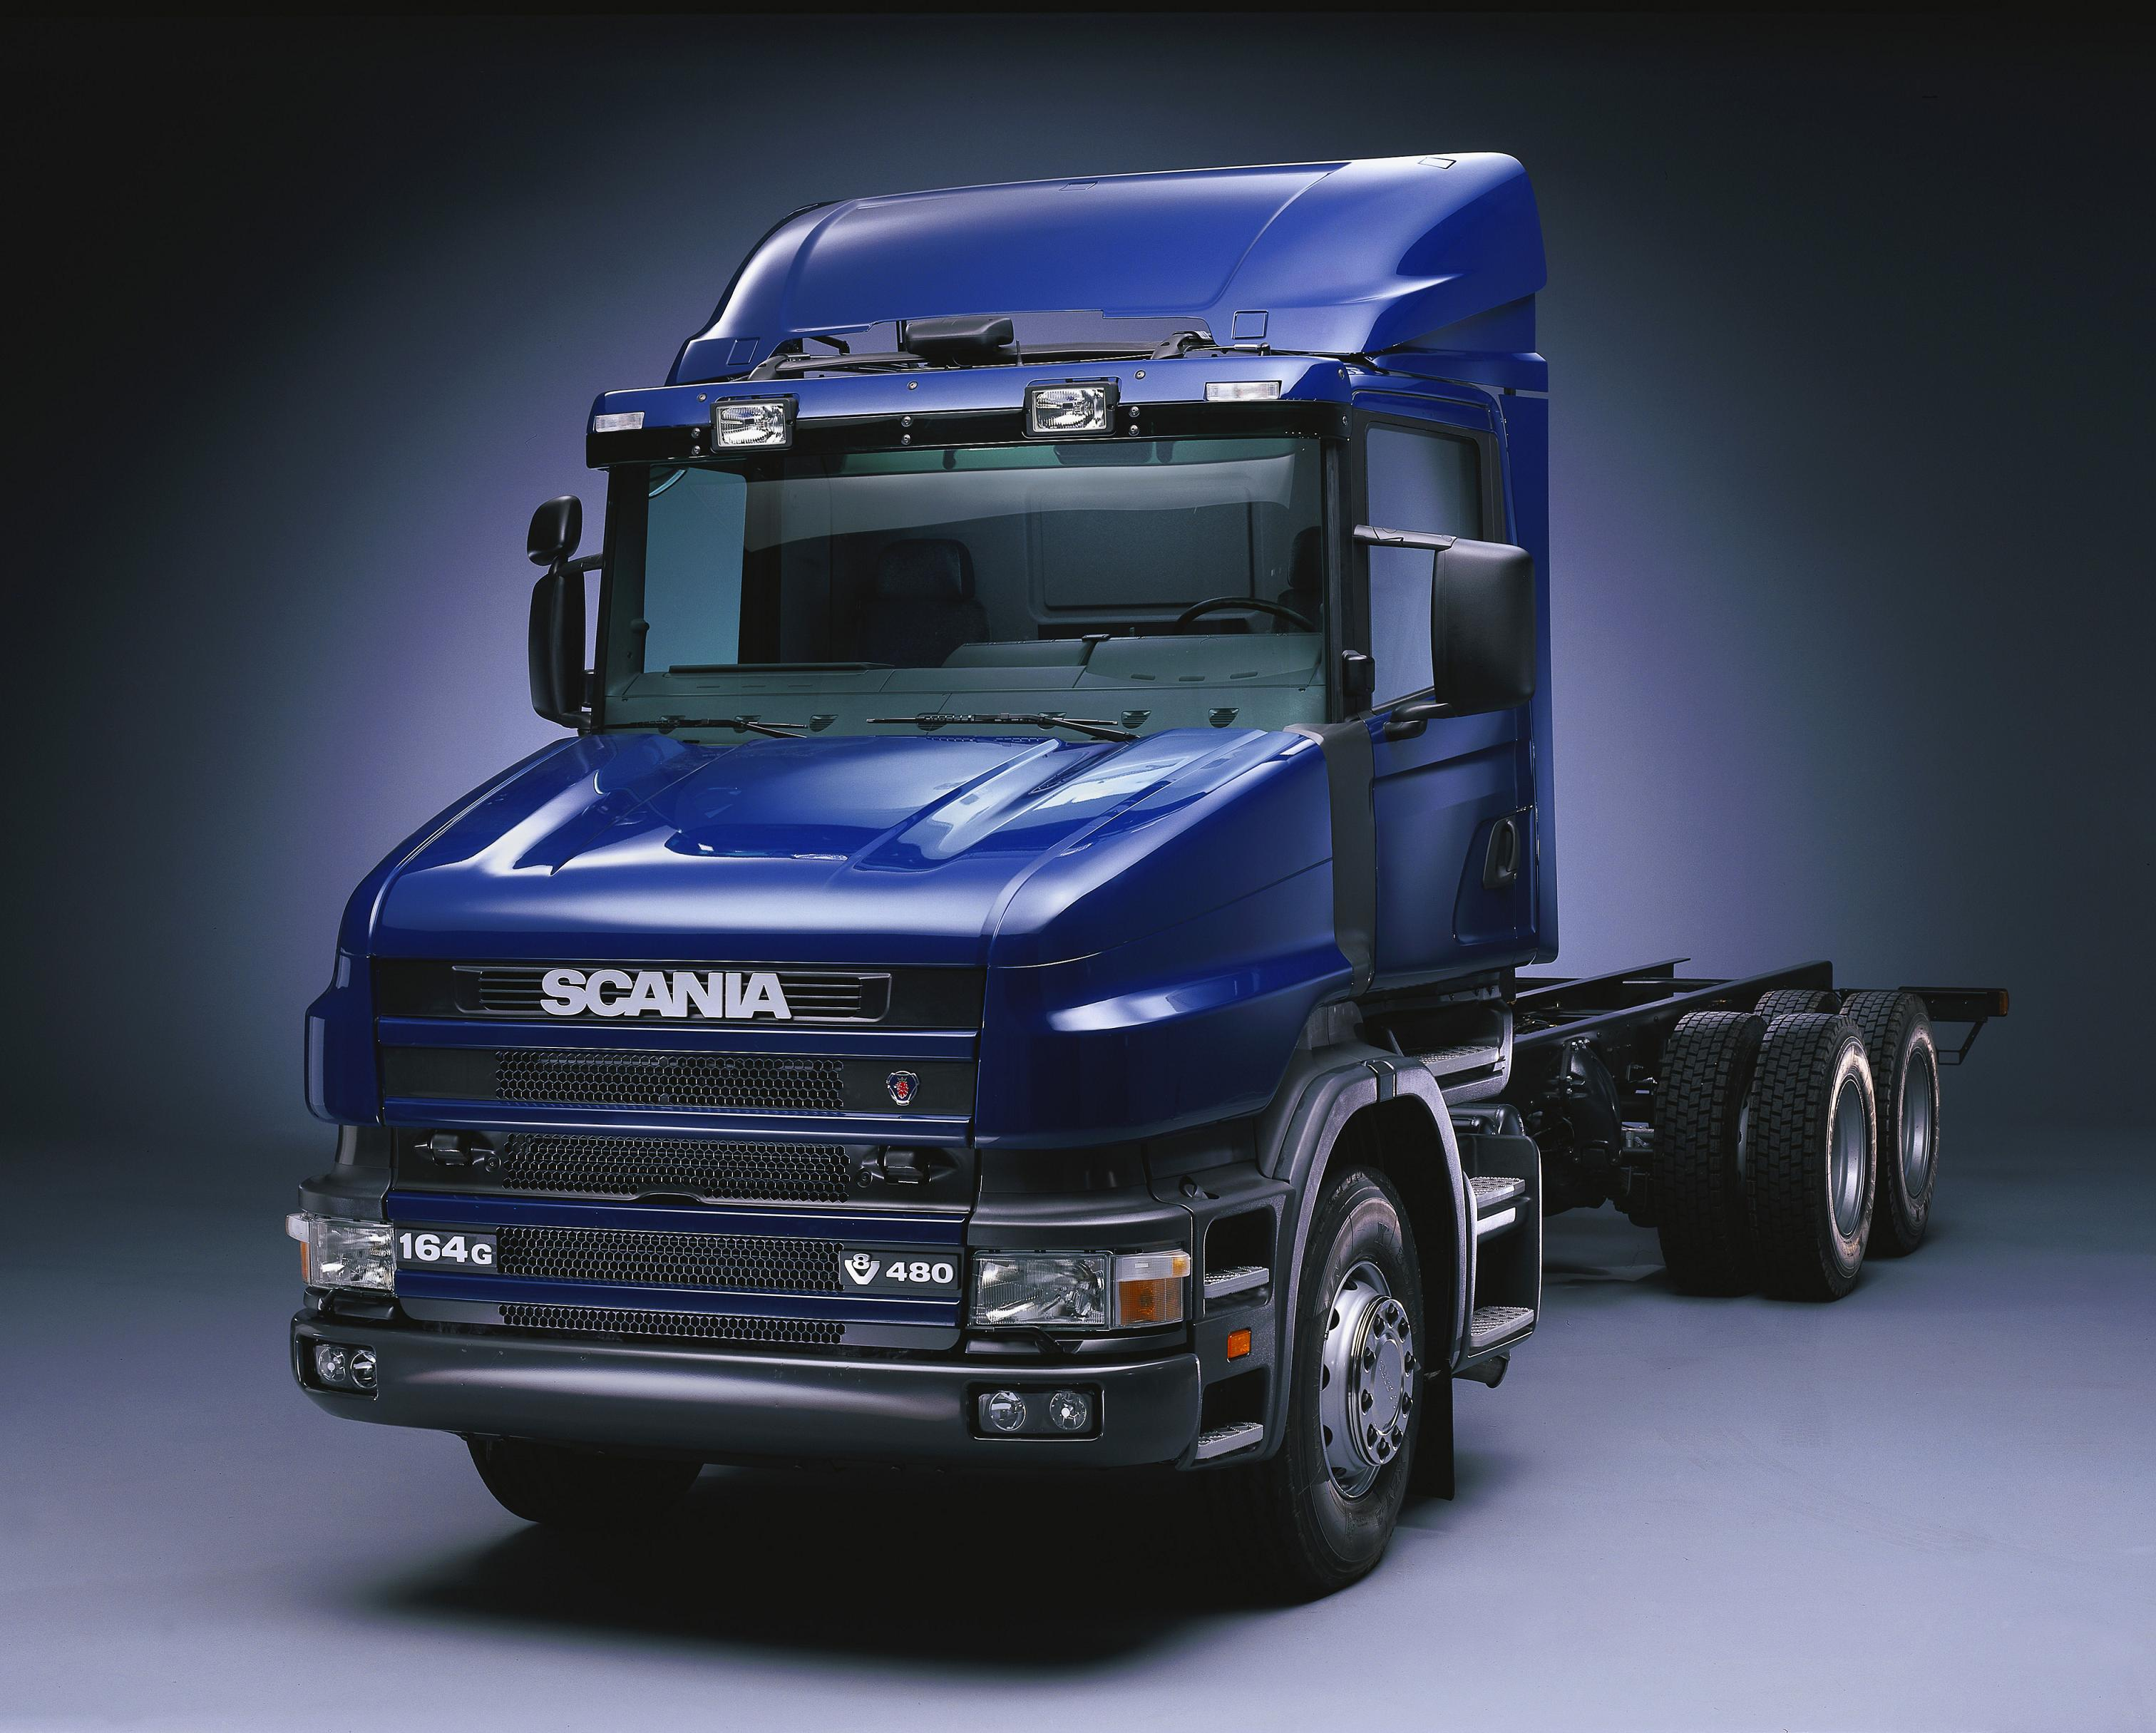 Scania T164g Photos Photogallery With 7 Pics Carsbase Com